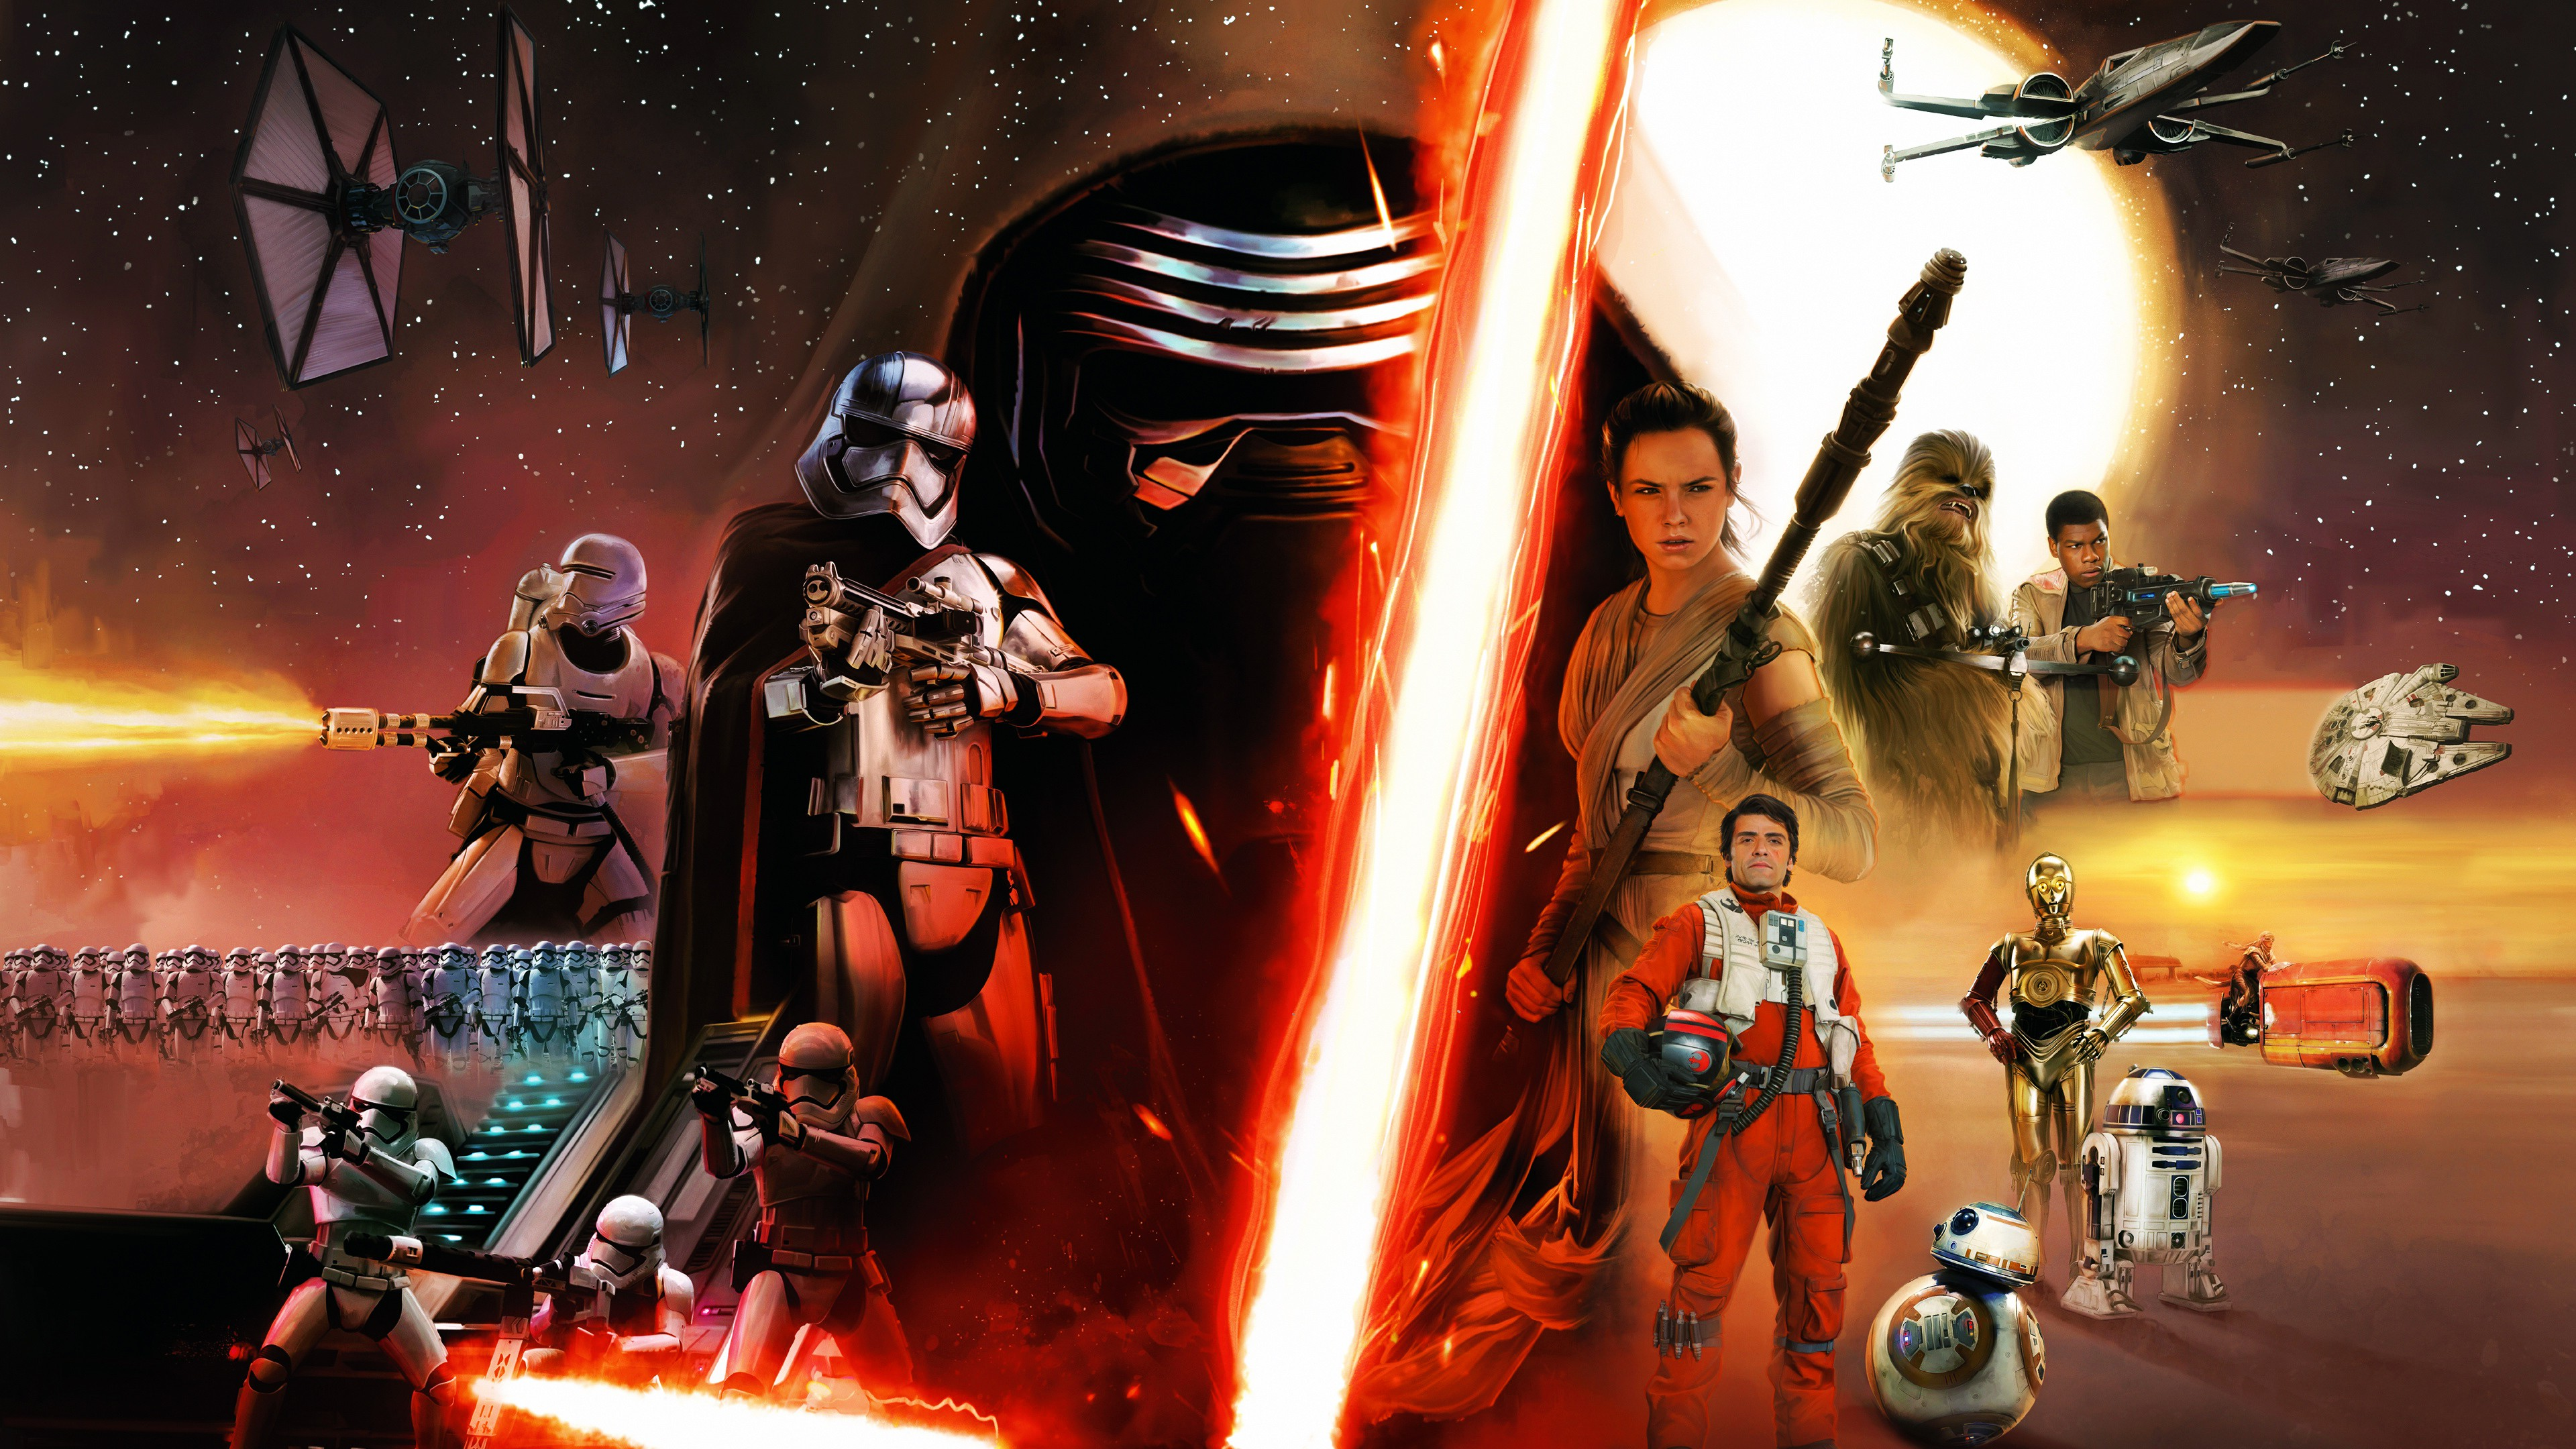 Star Wars The Force Awakens Wallpapers Posted By Sarah Walker